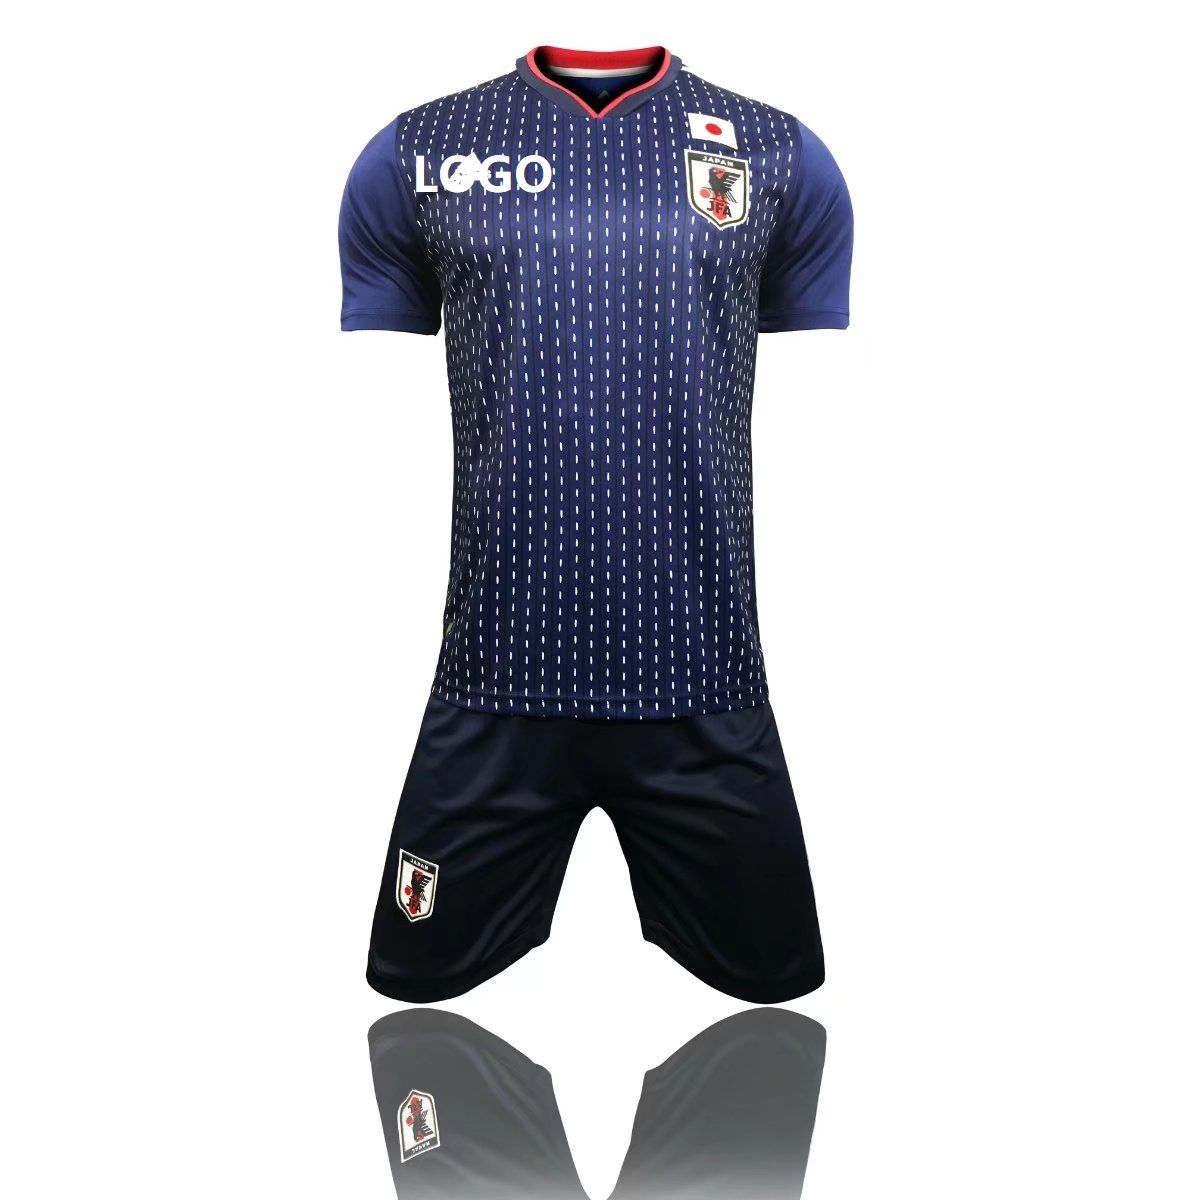 d329c6d9b 2018 Adult Japan Home Blue/white Soccer Jersey Uniforms Russia World Cup  Football Team Kits